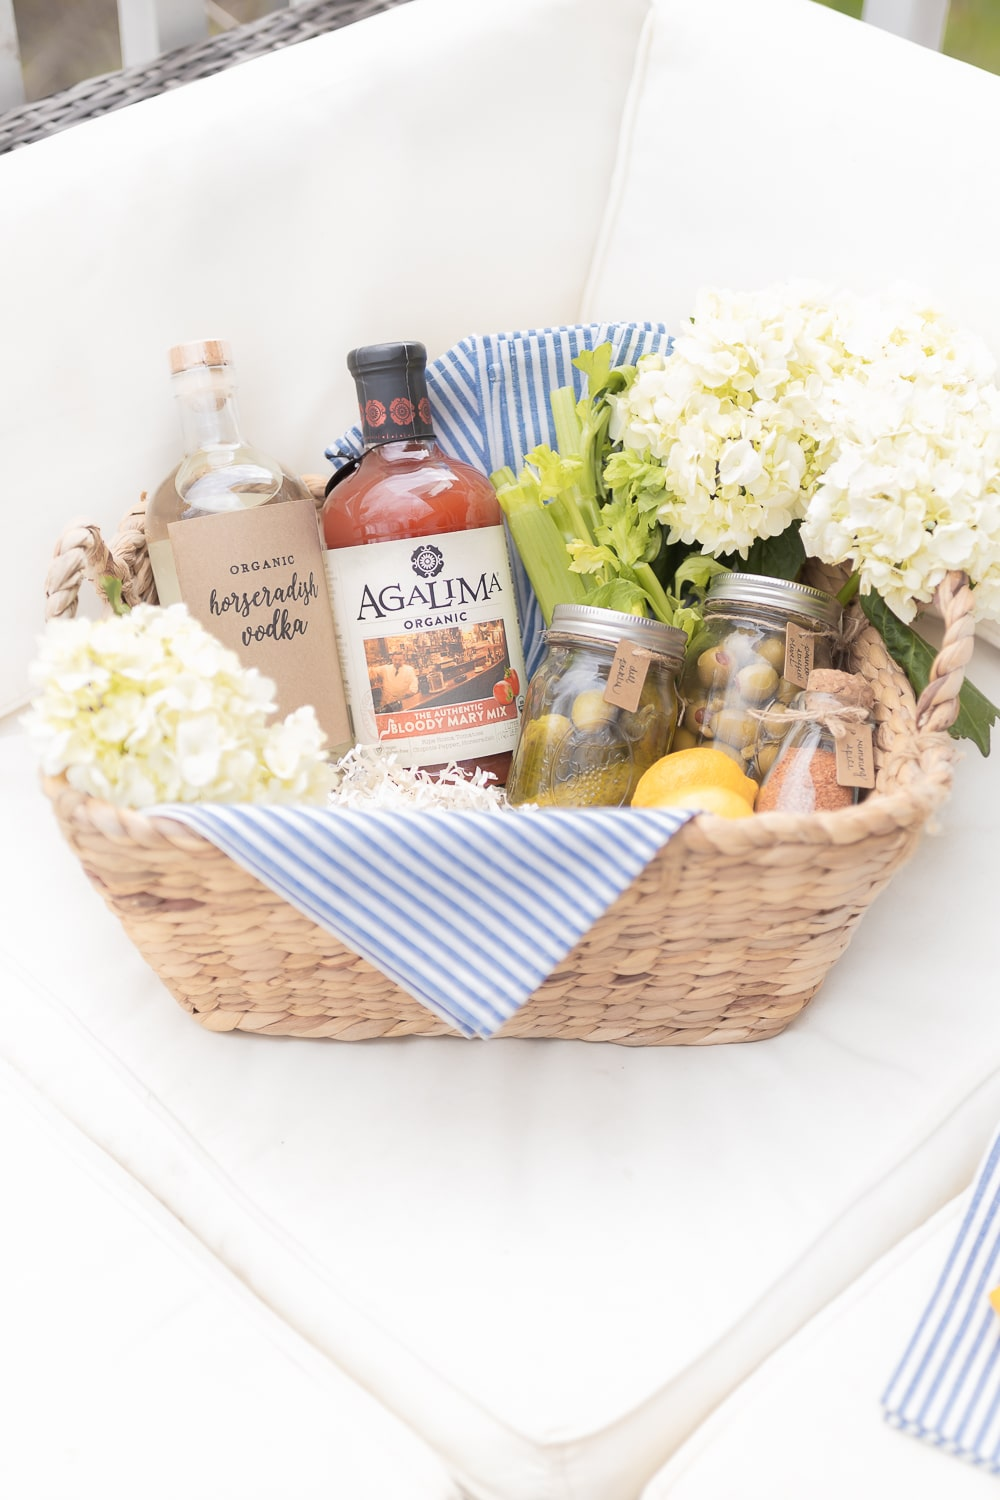 Bloody mary gift basket created by blogger Stephanie Ziajka on Diary of a Debutante